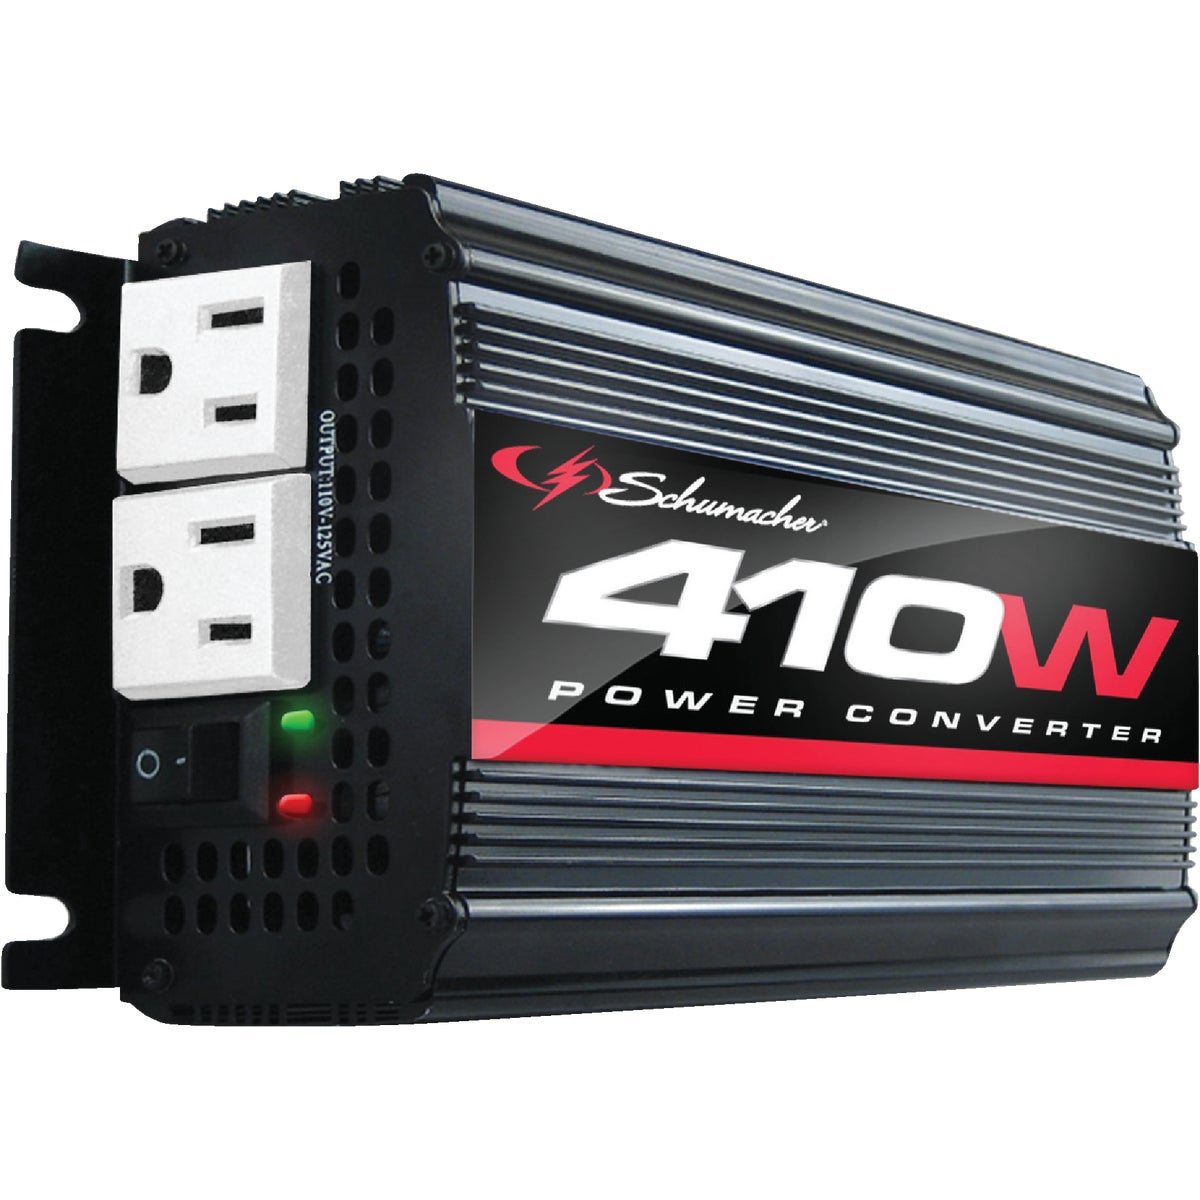 400W POWER INVERTER - PI-400 by Schumacher Electric